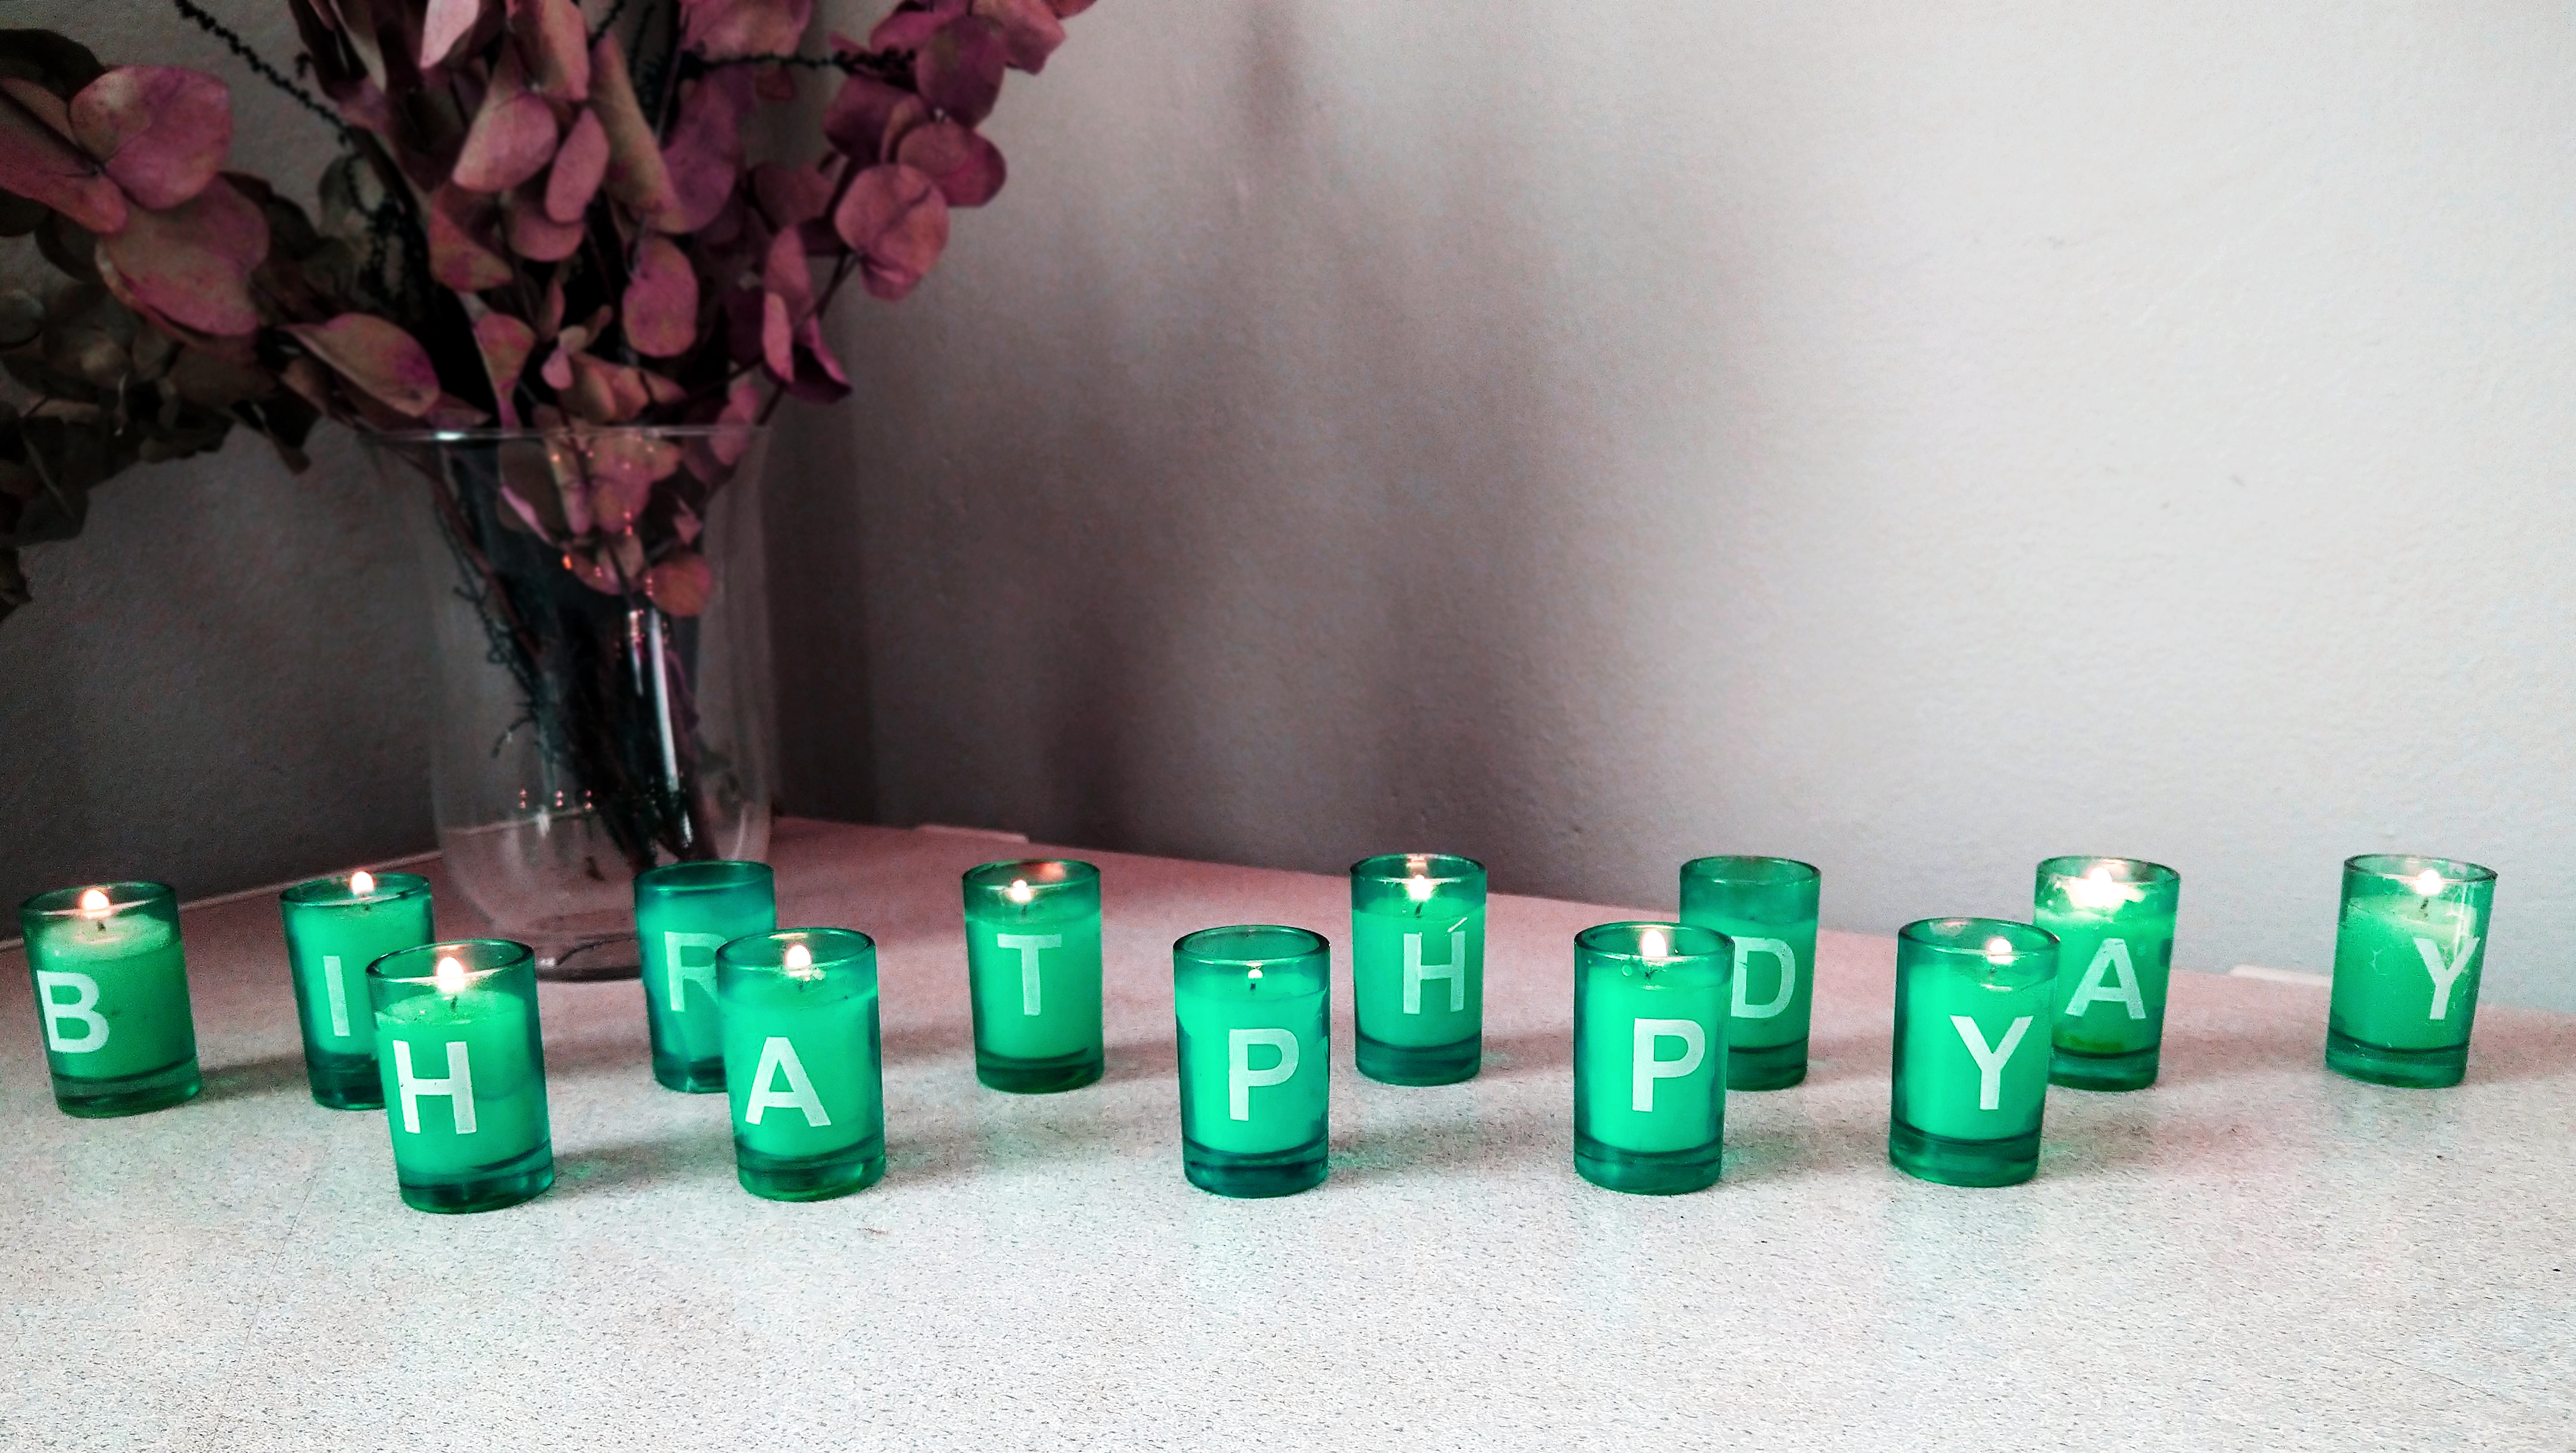 Happy Birthday spelled out with small blue candle holders with white candles inside that is lit.